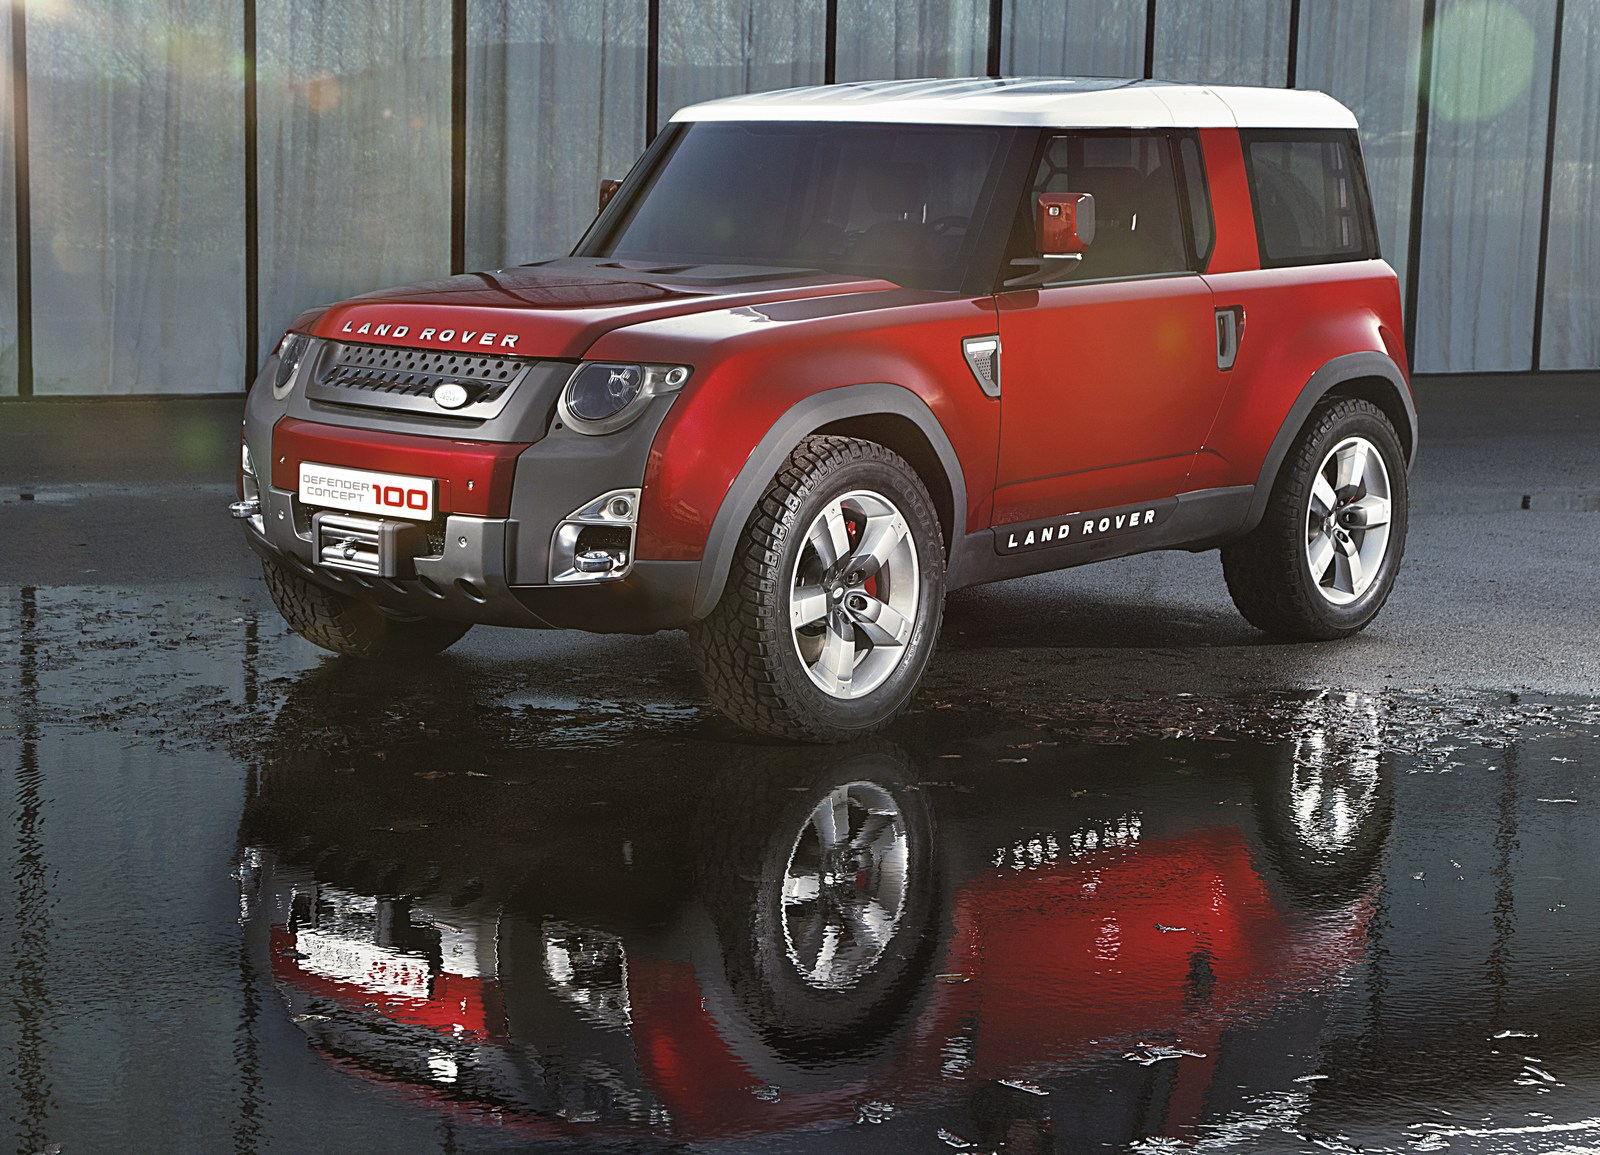 new land rover defender concept could be introduced next year carscoops. Black Bedroom Furniture Sets. Home Design Ideas